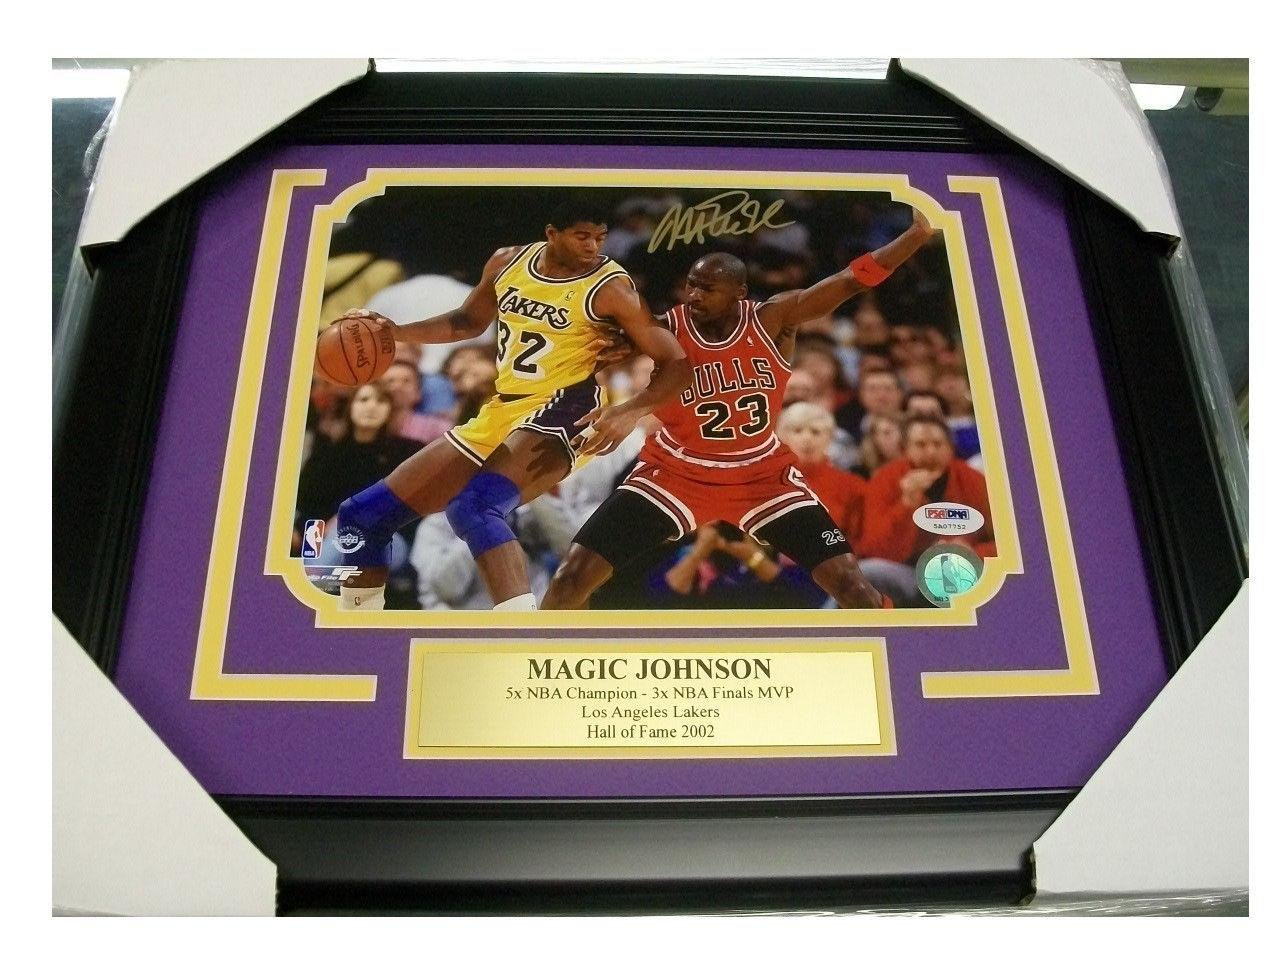 Magic Johnson Signed Picture - Vs Michael Jordan Psa 8x10 Framed Authentic - Autographed NBA Photos signed cnblue jung yong hwa autographed mini2nd album do disturb cd photobook signed poster 082017